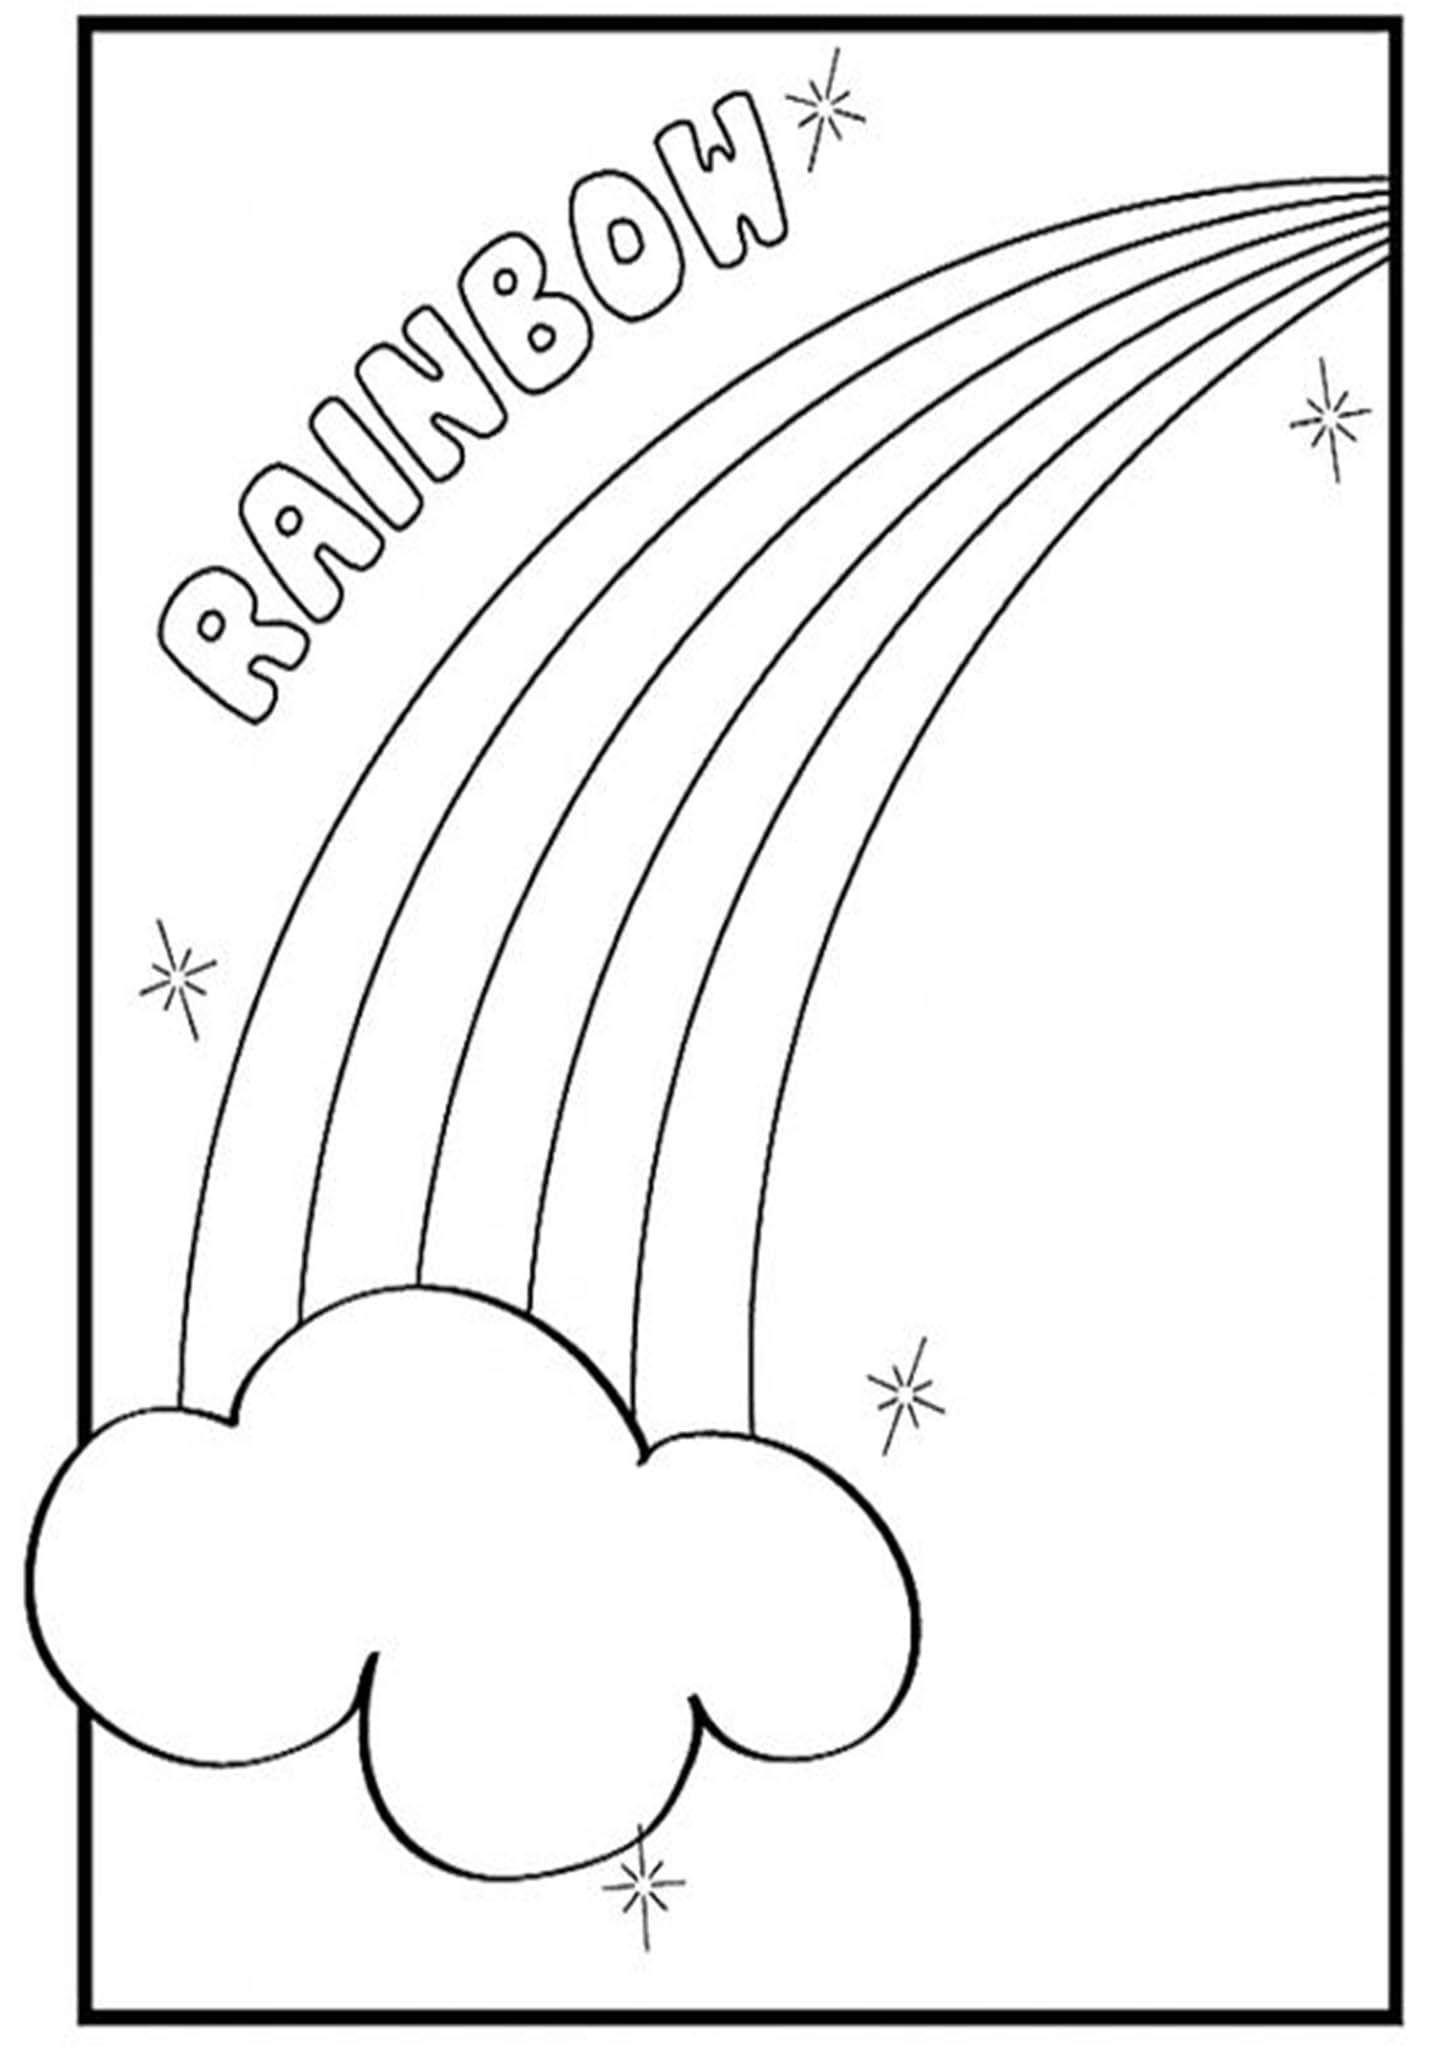 Free Easy To Print Rainbow Coloring Pages Rainbow Pages Printable Coloring Pages Coloring Pages For Kids